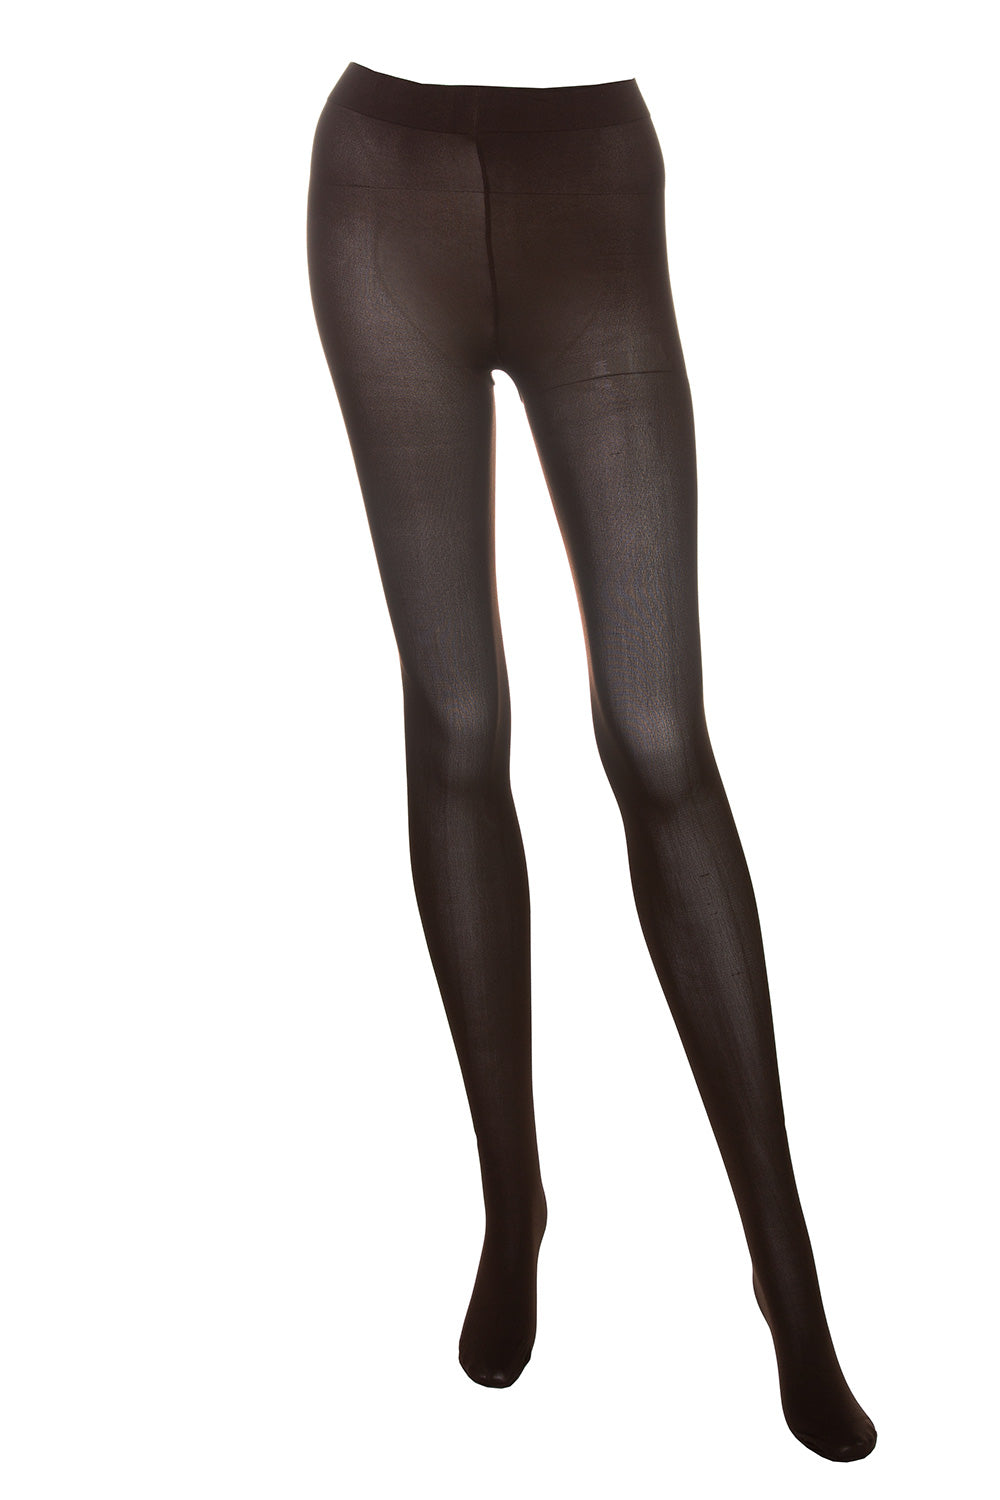 Type 1 Cute Cocoa Tights